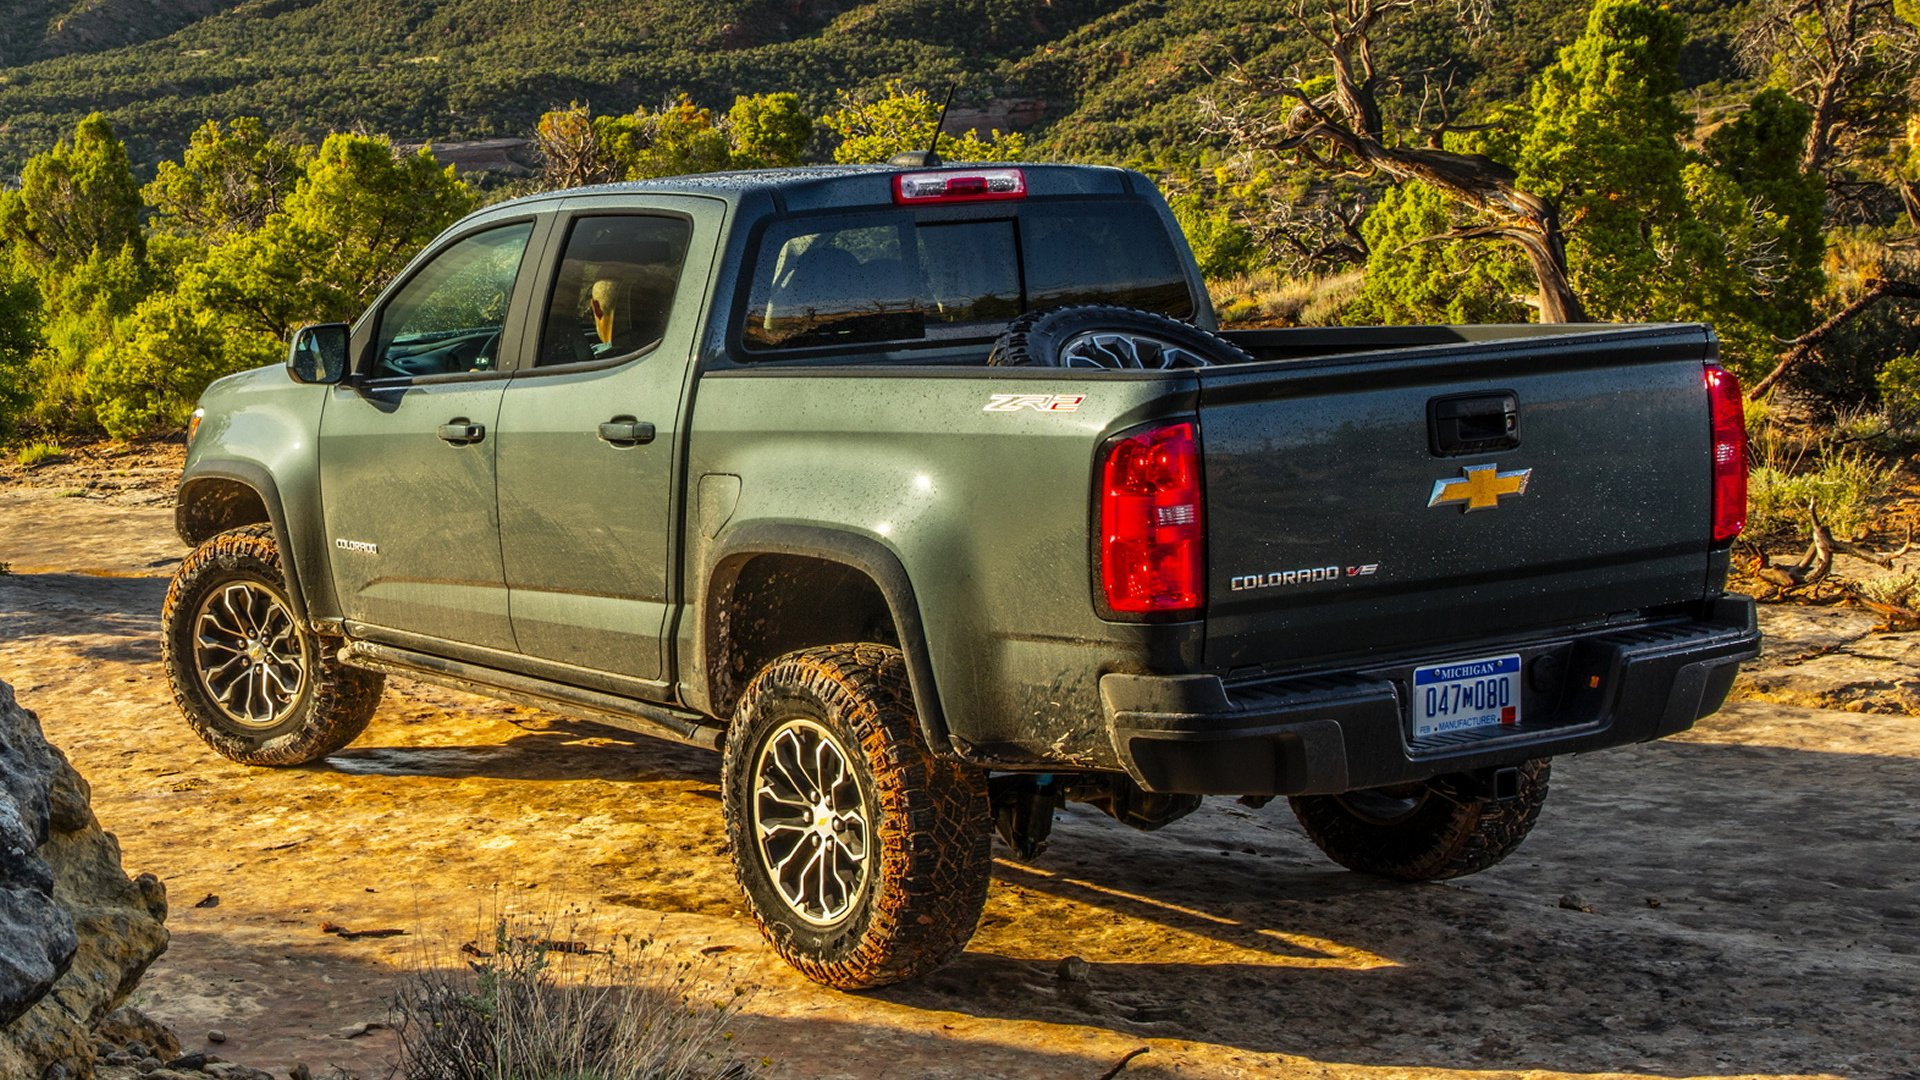 Vehicles - Chevrolet Colorado  Chevrolet Colorado ZR2 Pickup Off-Road Black Car Car Wallpaper